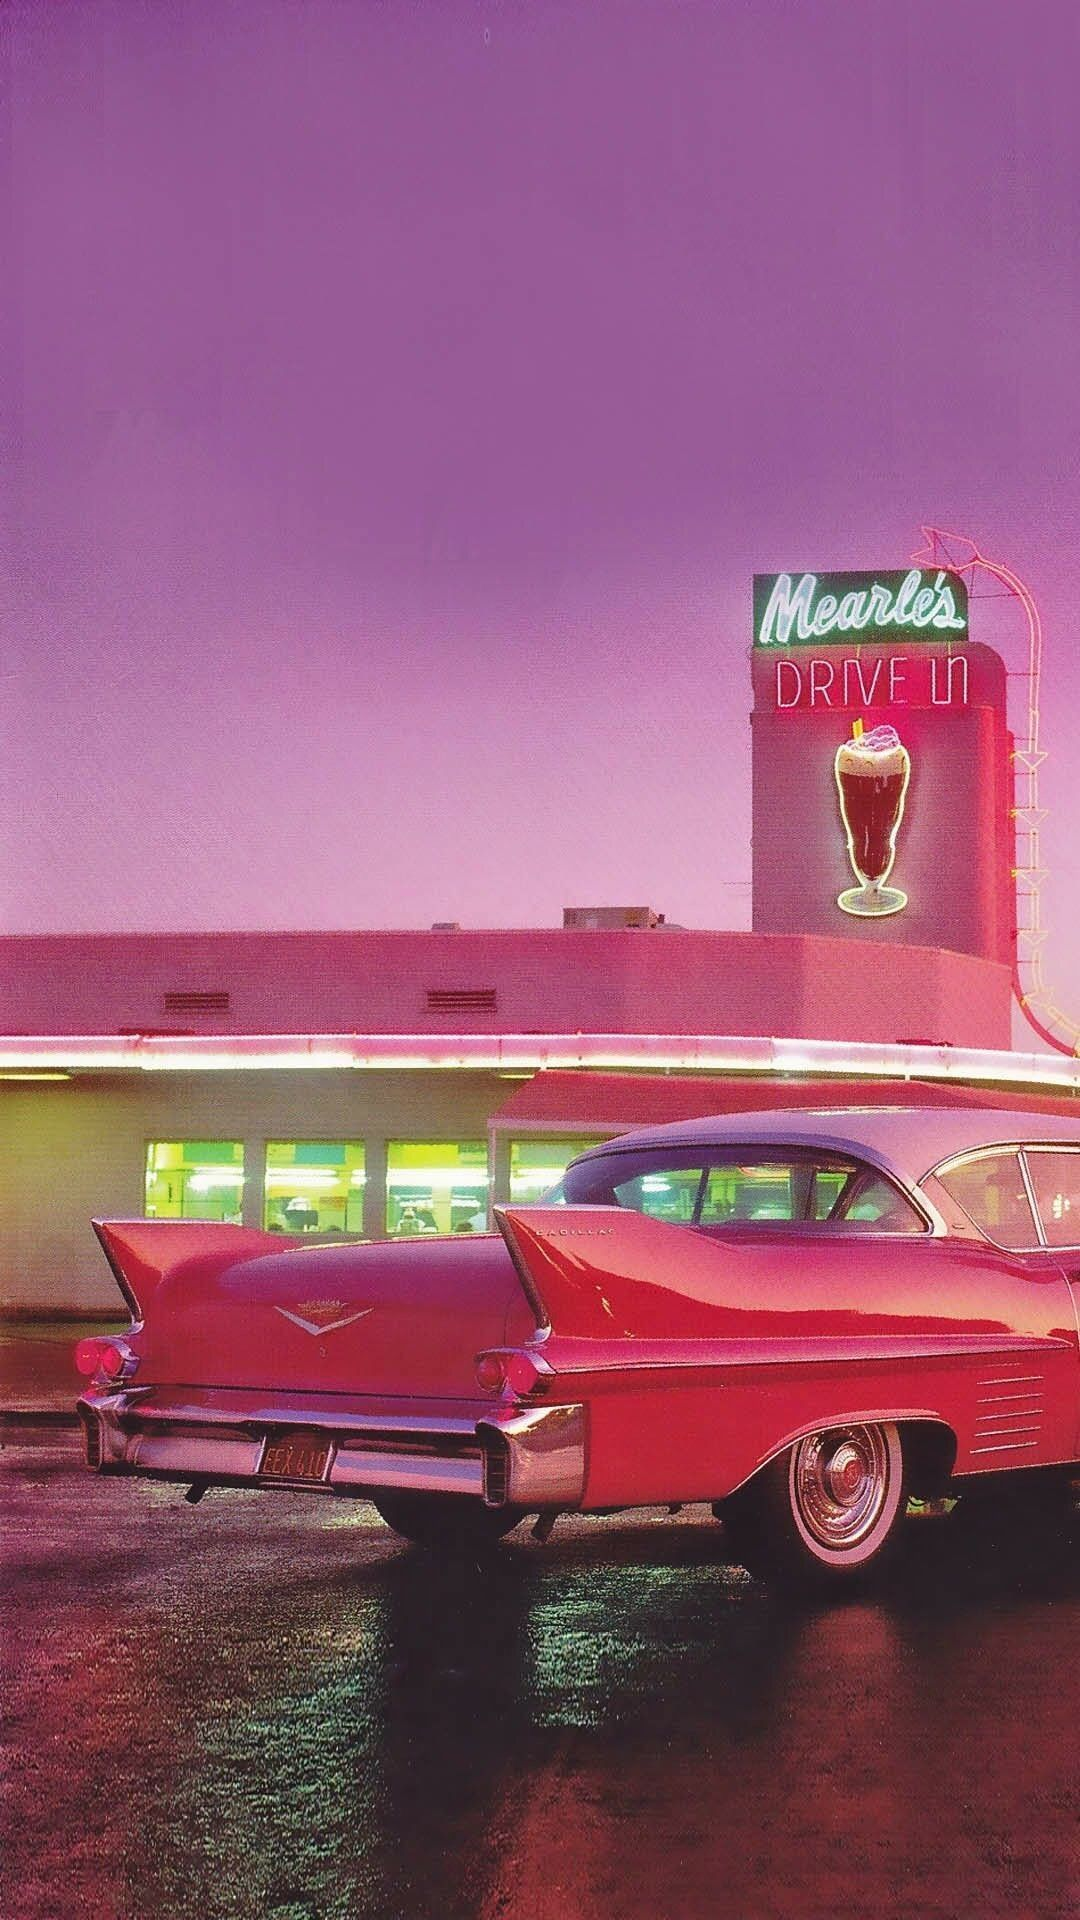 #50S #auf #Diner #WallpaperPlay #Wallpapers 37 50S Diner Wallpapers on WallpaperPlay 37